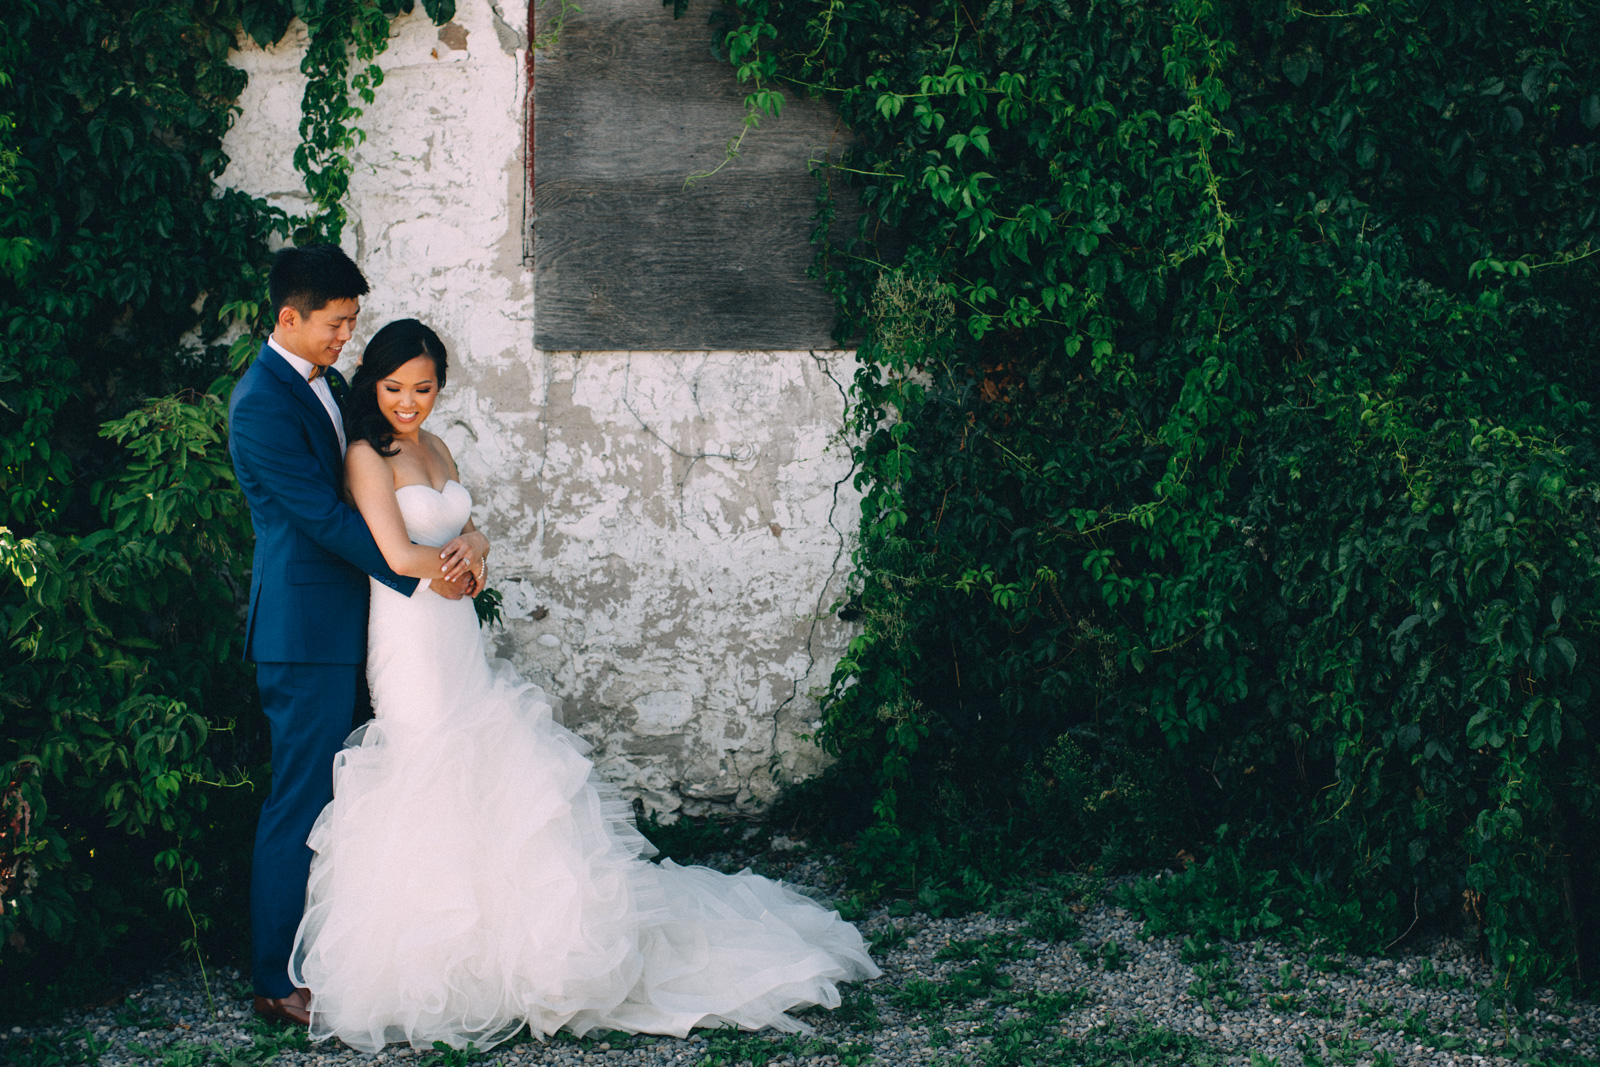 Cambium-Farms-wedding-photography-by-Sam-Wong-of-Artanis-Collective_23.jpg